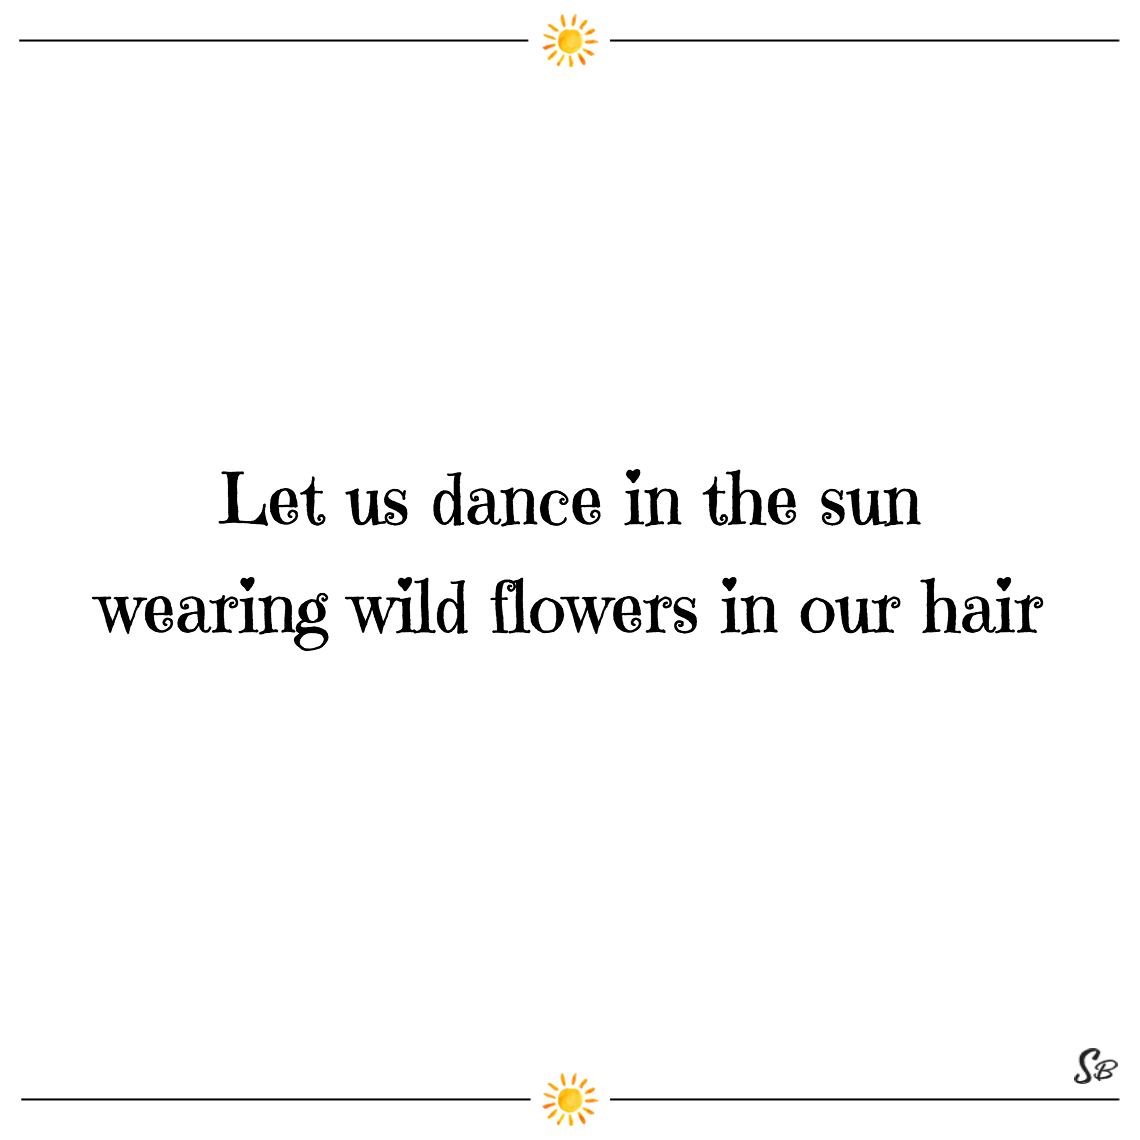 Let us dance in the sun wearing wild flowers in our hair